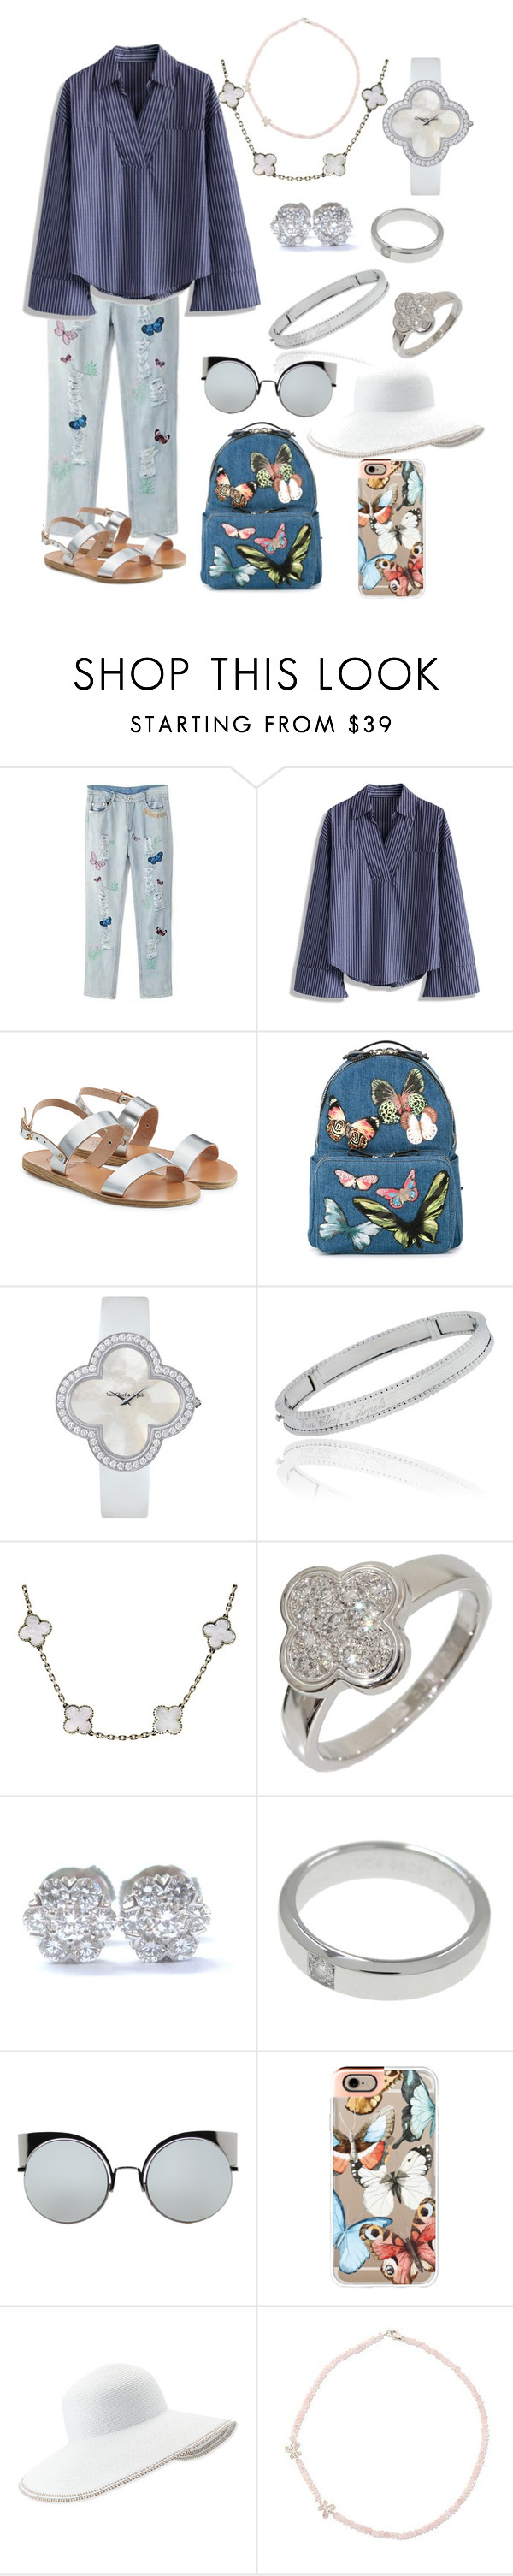 """Untitled #254"" by amlak85 ❤ liked on Polyvore featuring Chicwish, Ancient Greek Sandals, Valentino, Van Cleef & Arpels, Fendi, Casetify, Eric Javits and NOVICA"